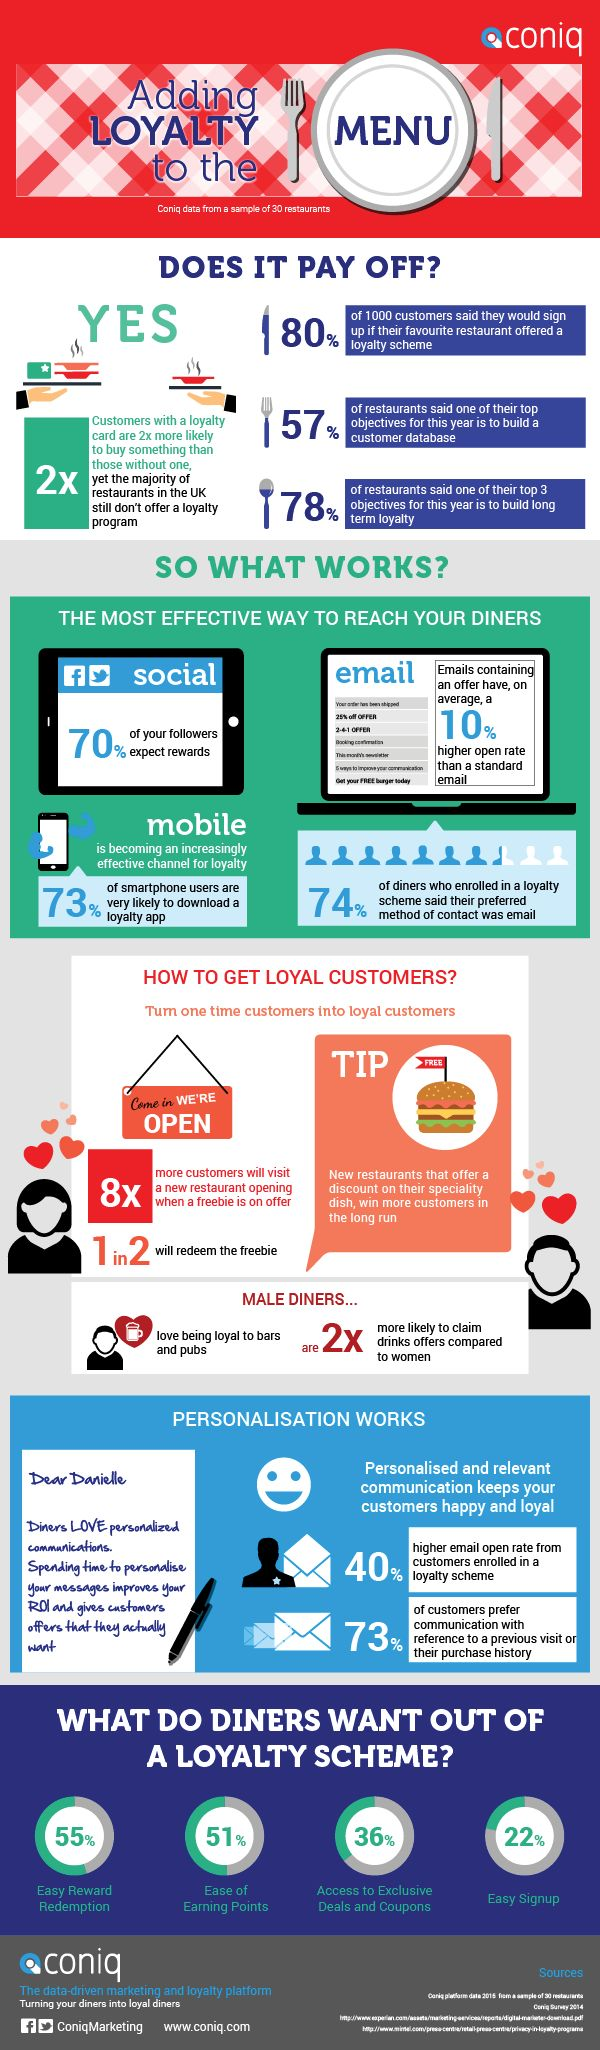 Adding Loyalty to the Menu #infographic #LoyaltyProgram #HotelMarketing